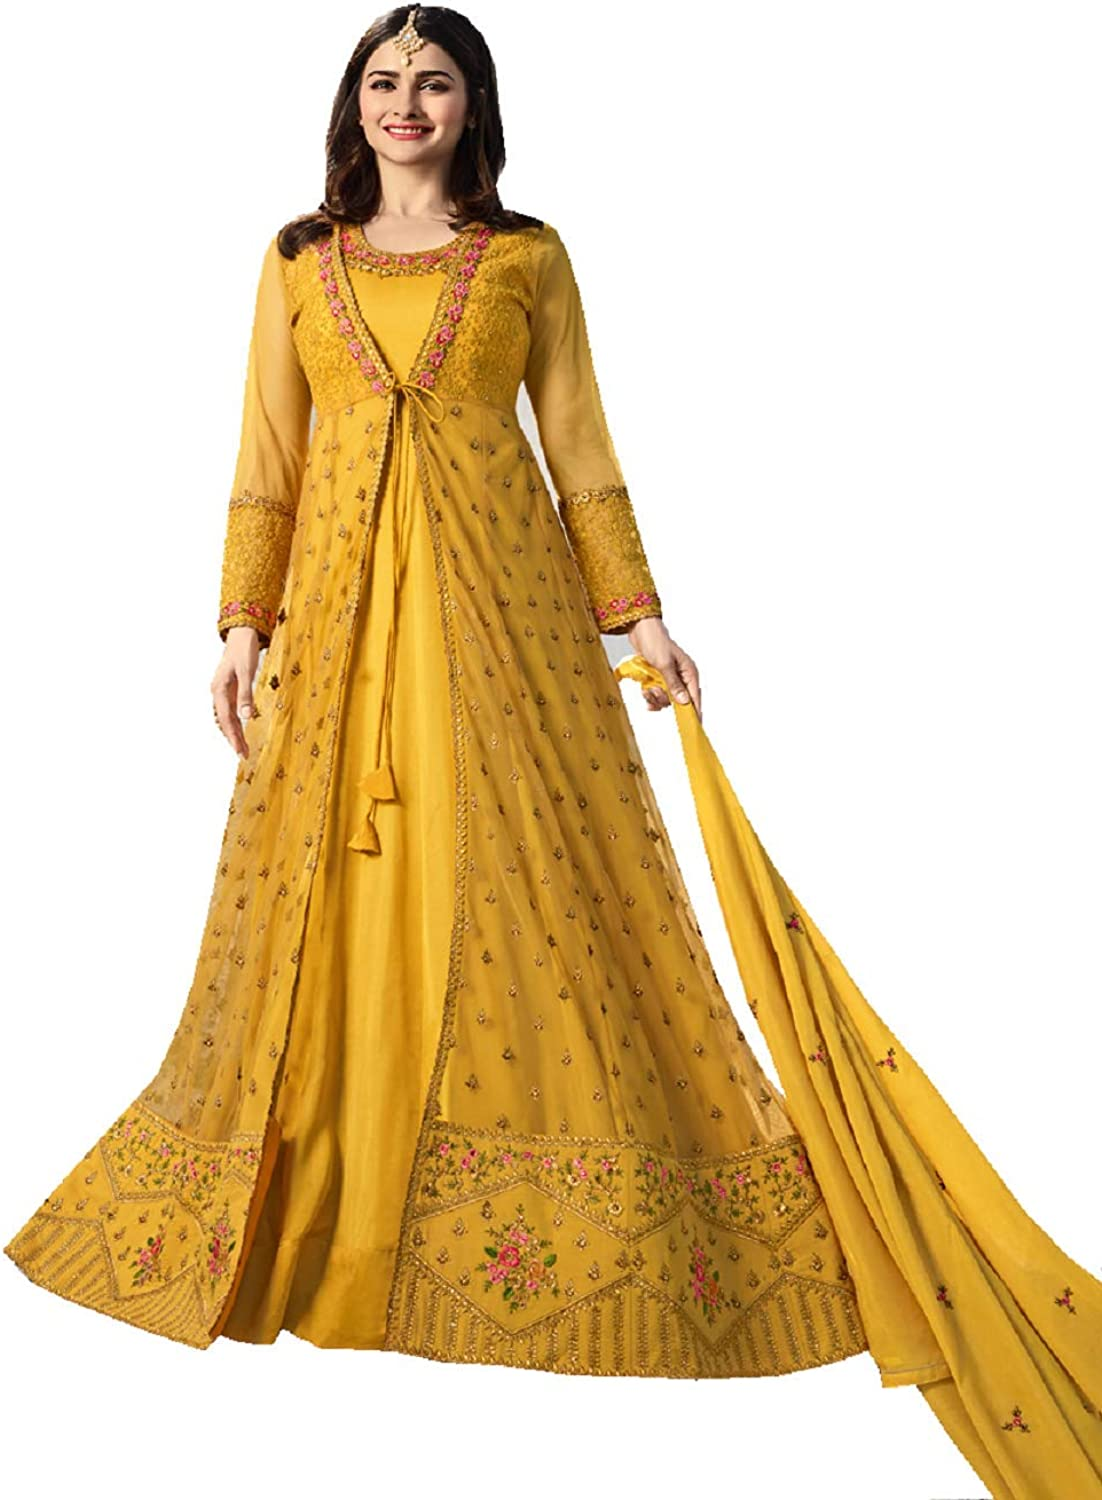 Delisa Indian Pakistani Bollywood Party Wear Long Anarkali Gown for Womens VNN